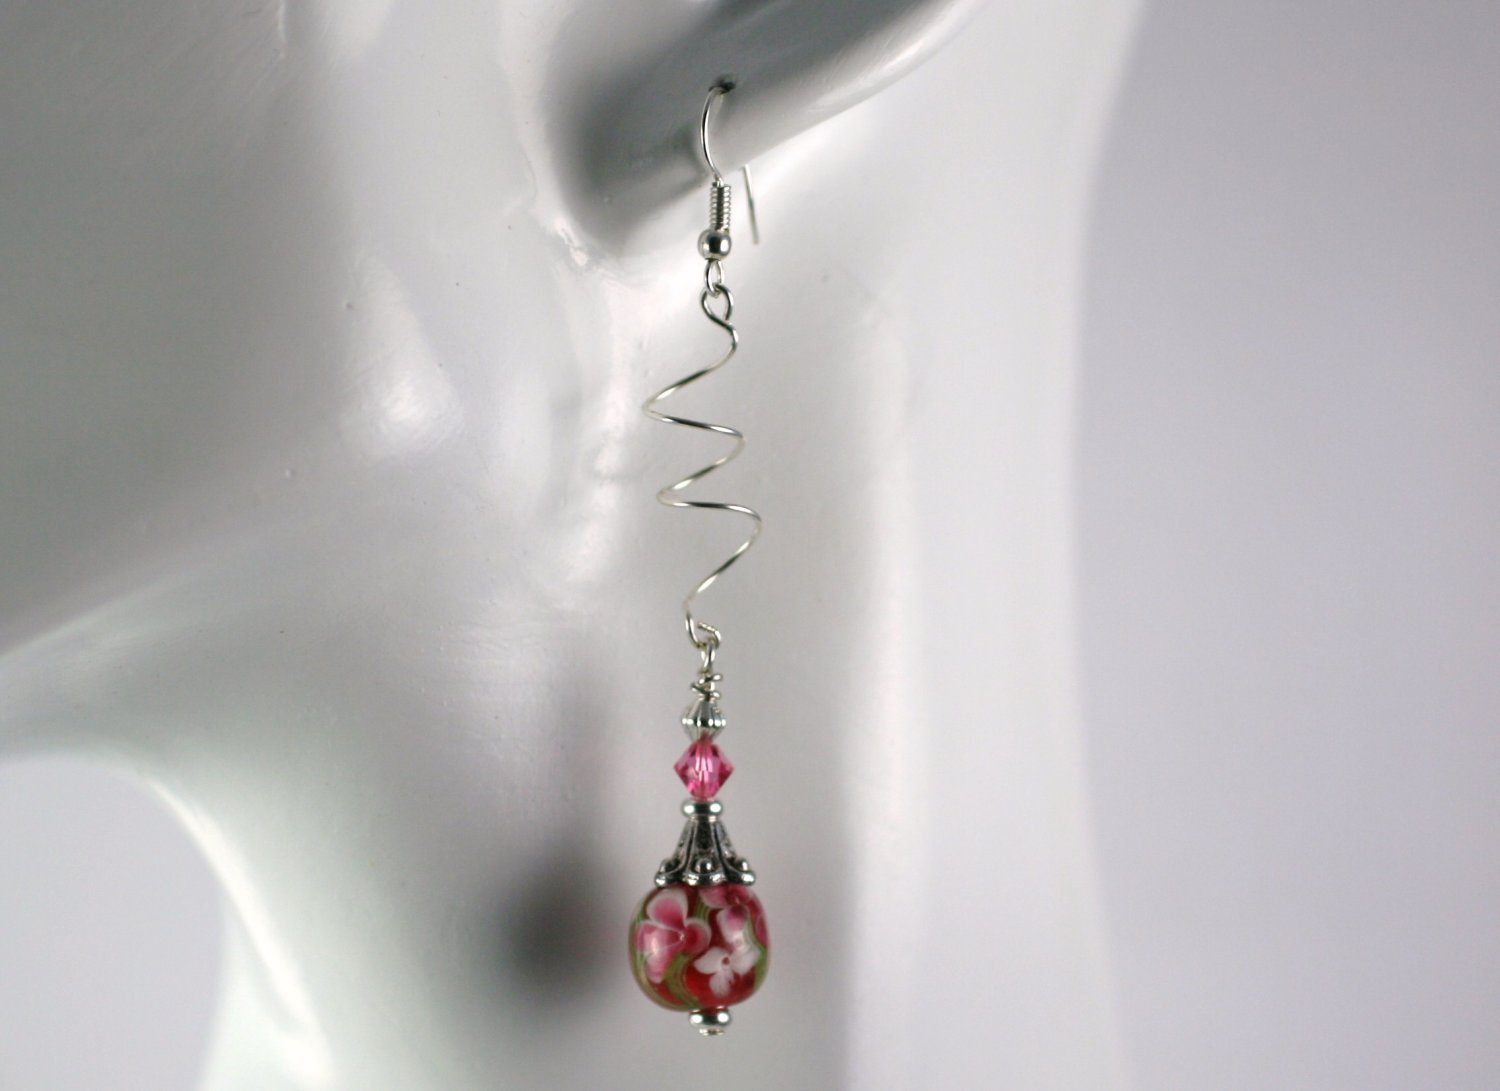 Silver Spiral Drop Dangle Earrings with  Pink Pansy Lampwork Beads Handcrafted Jewelry